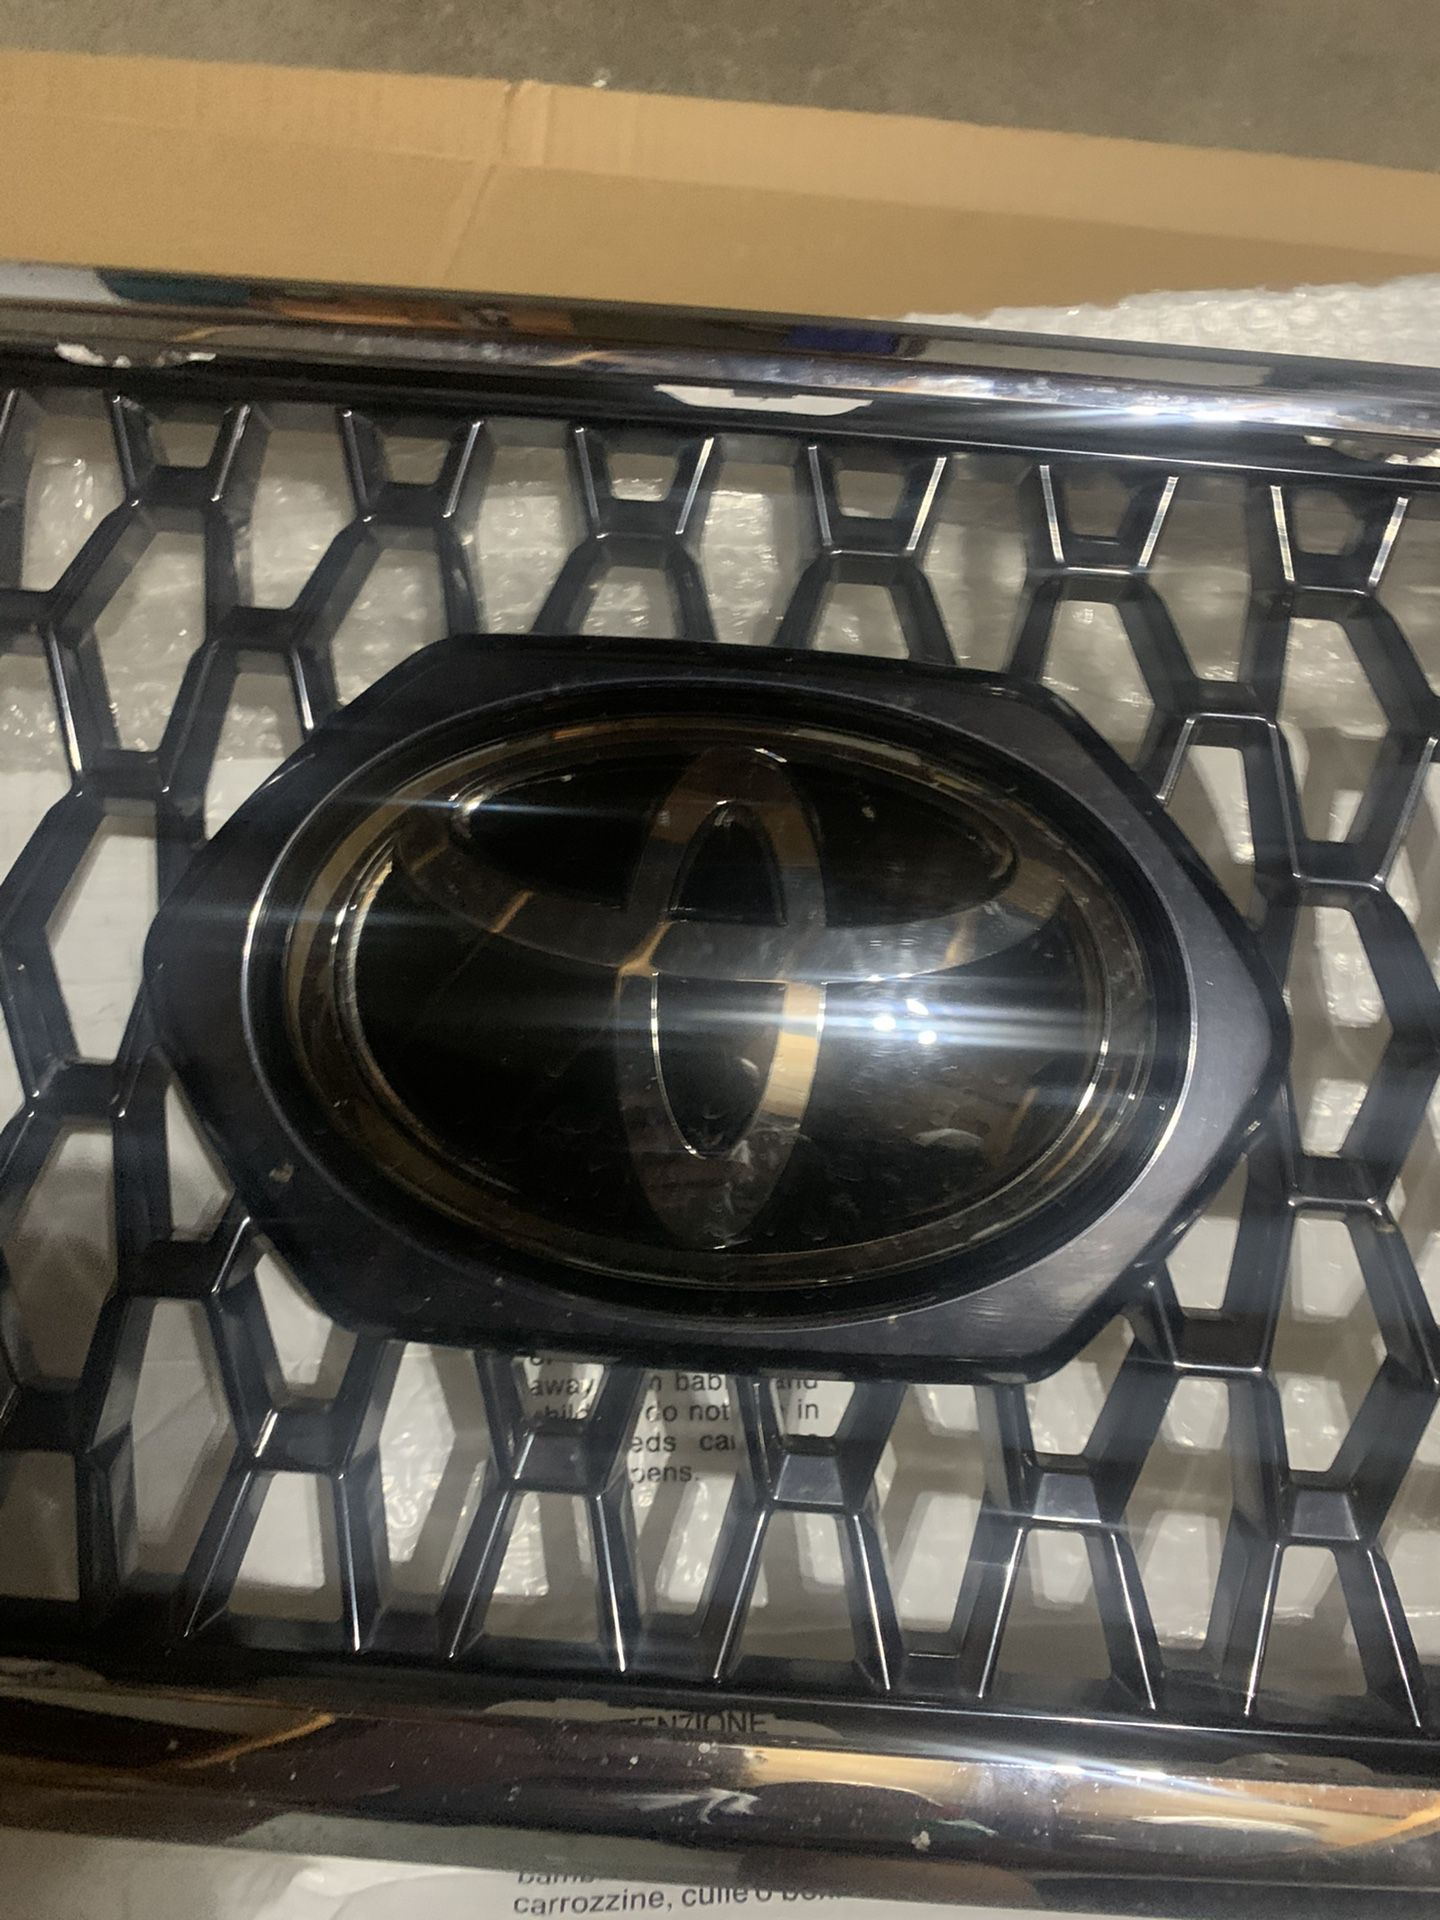 OEM Tacoma TRD-Off-road Grill